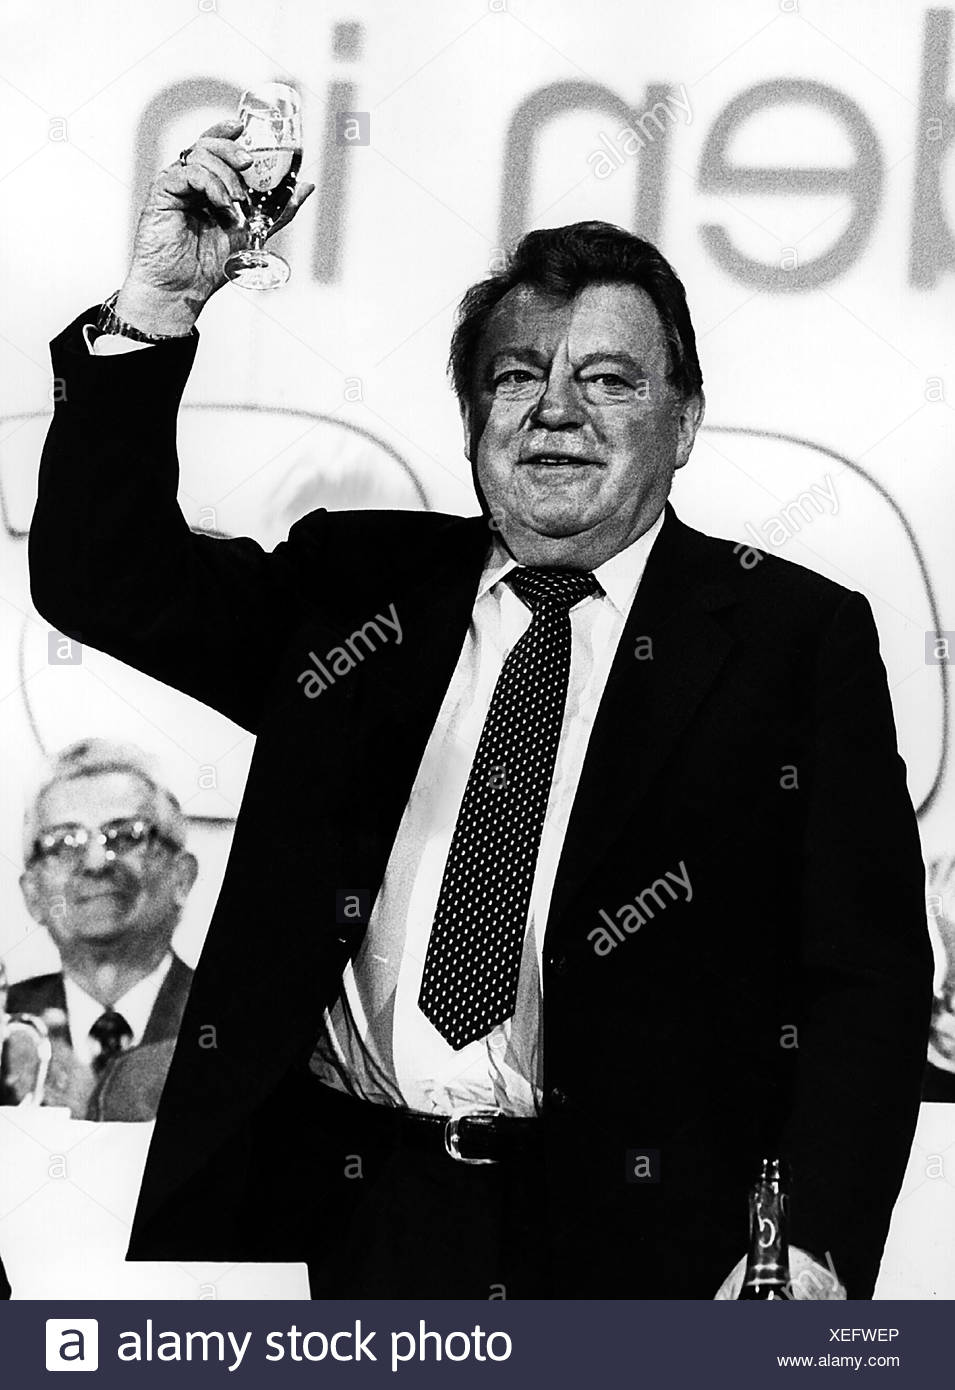 Strauss, Franz Josef, 6.9.1915 - 3.10.1988, German politician (CSU), half length, during a party meeting at the Nibelungenhalle, Passau, Bavaria, Germany, 20.2.1985, Additional-Rights-Clearances-NA - Stock Image